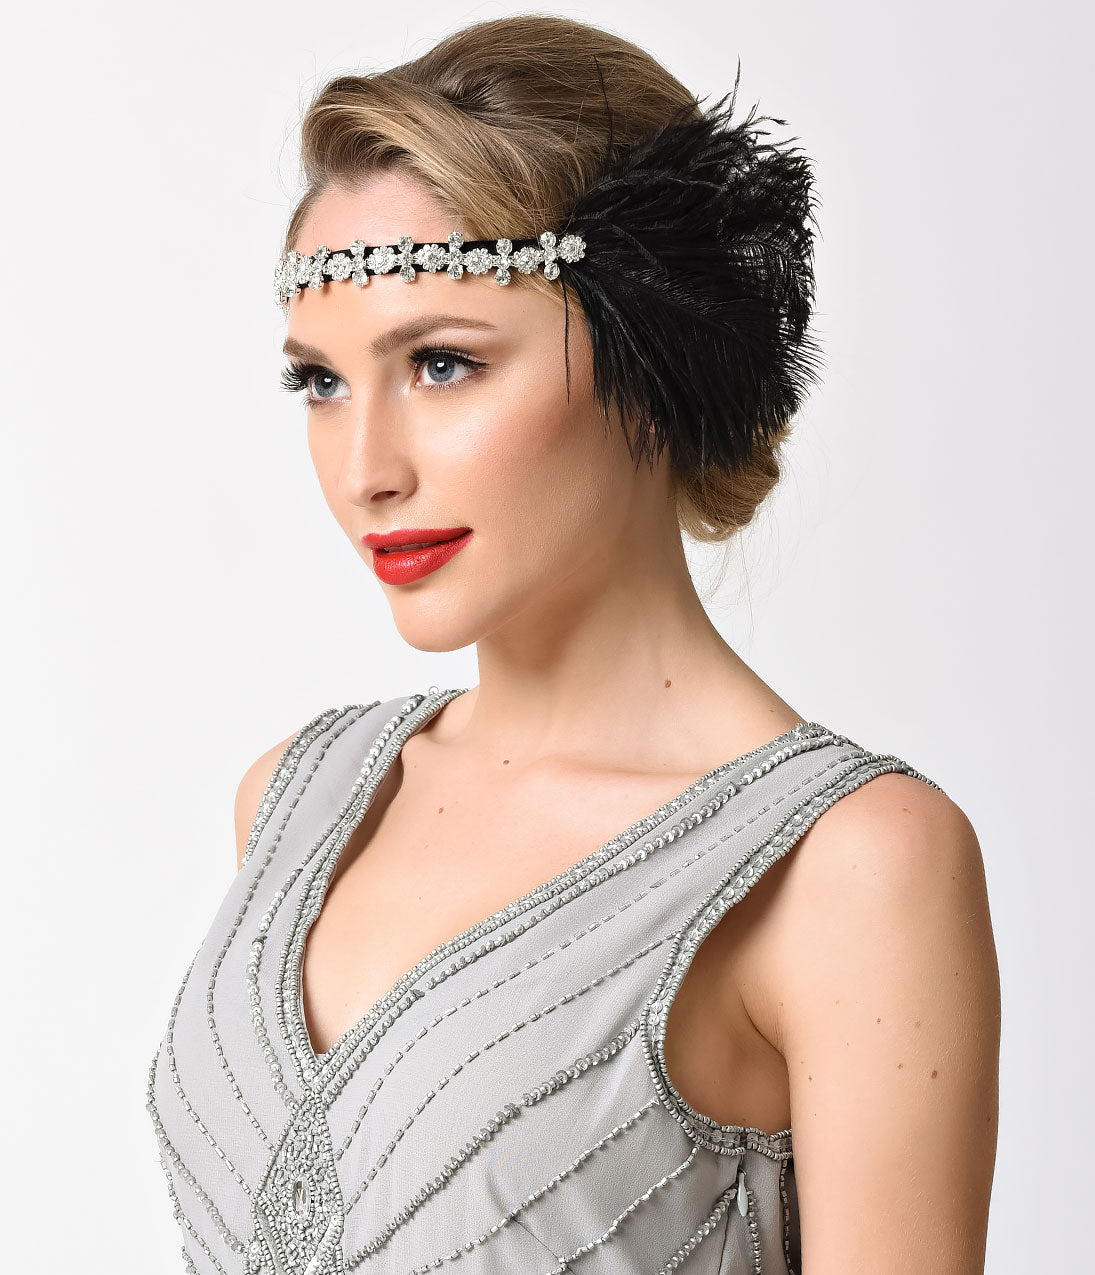 1920s Flapper Headband, Gatsby Headpiece, Wigs Black Feather  Silver Rhinestone Gatsby Headband $48.00 AT vintagedancer.com